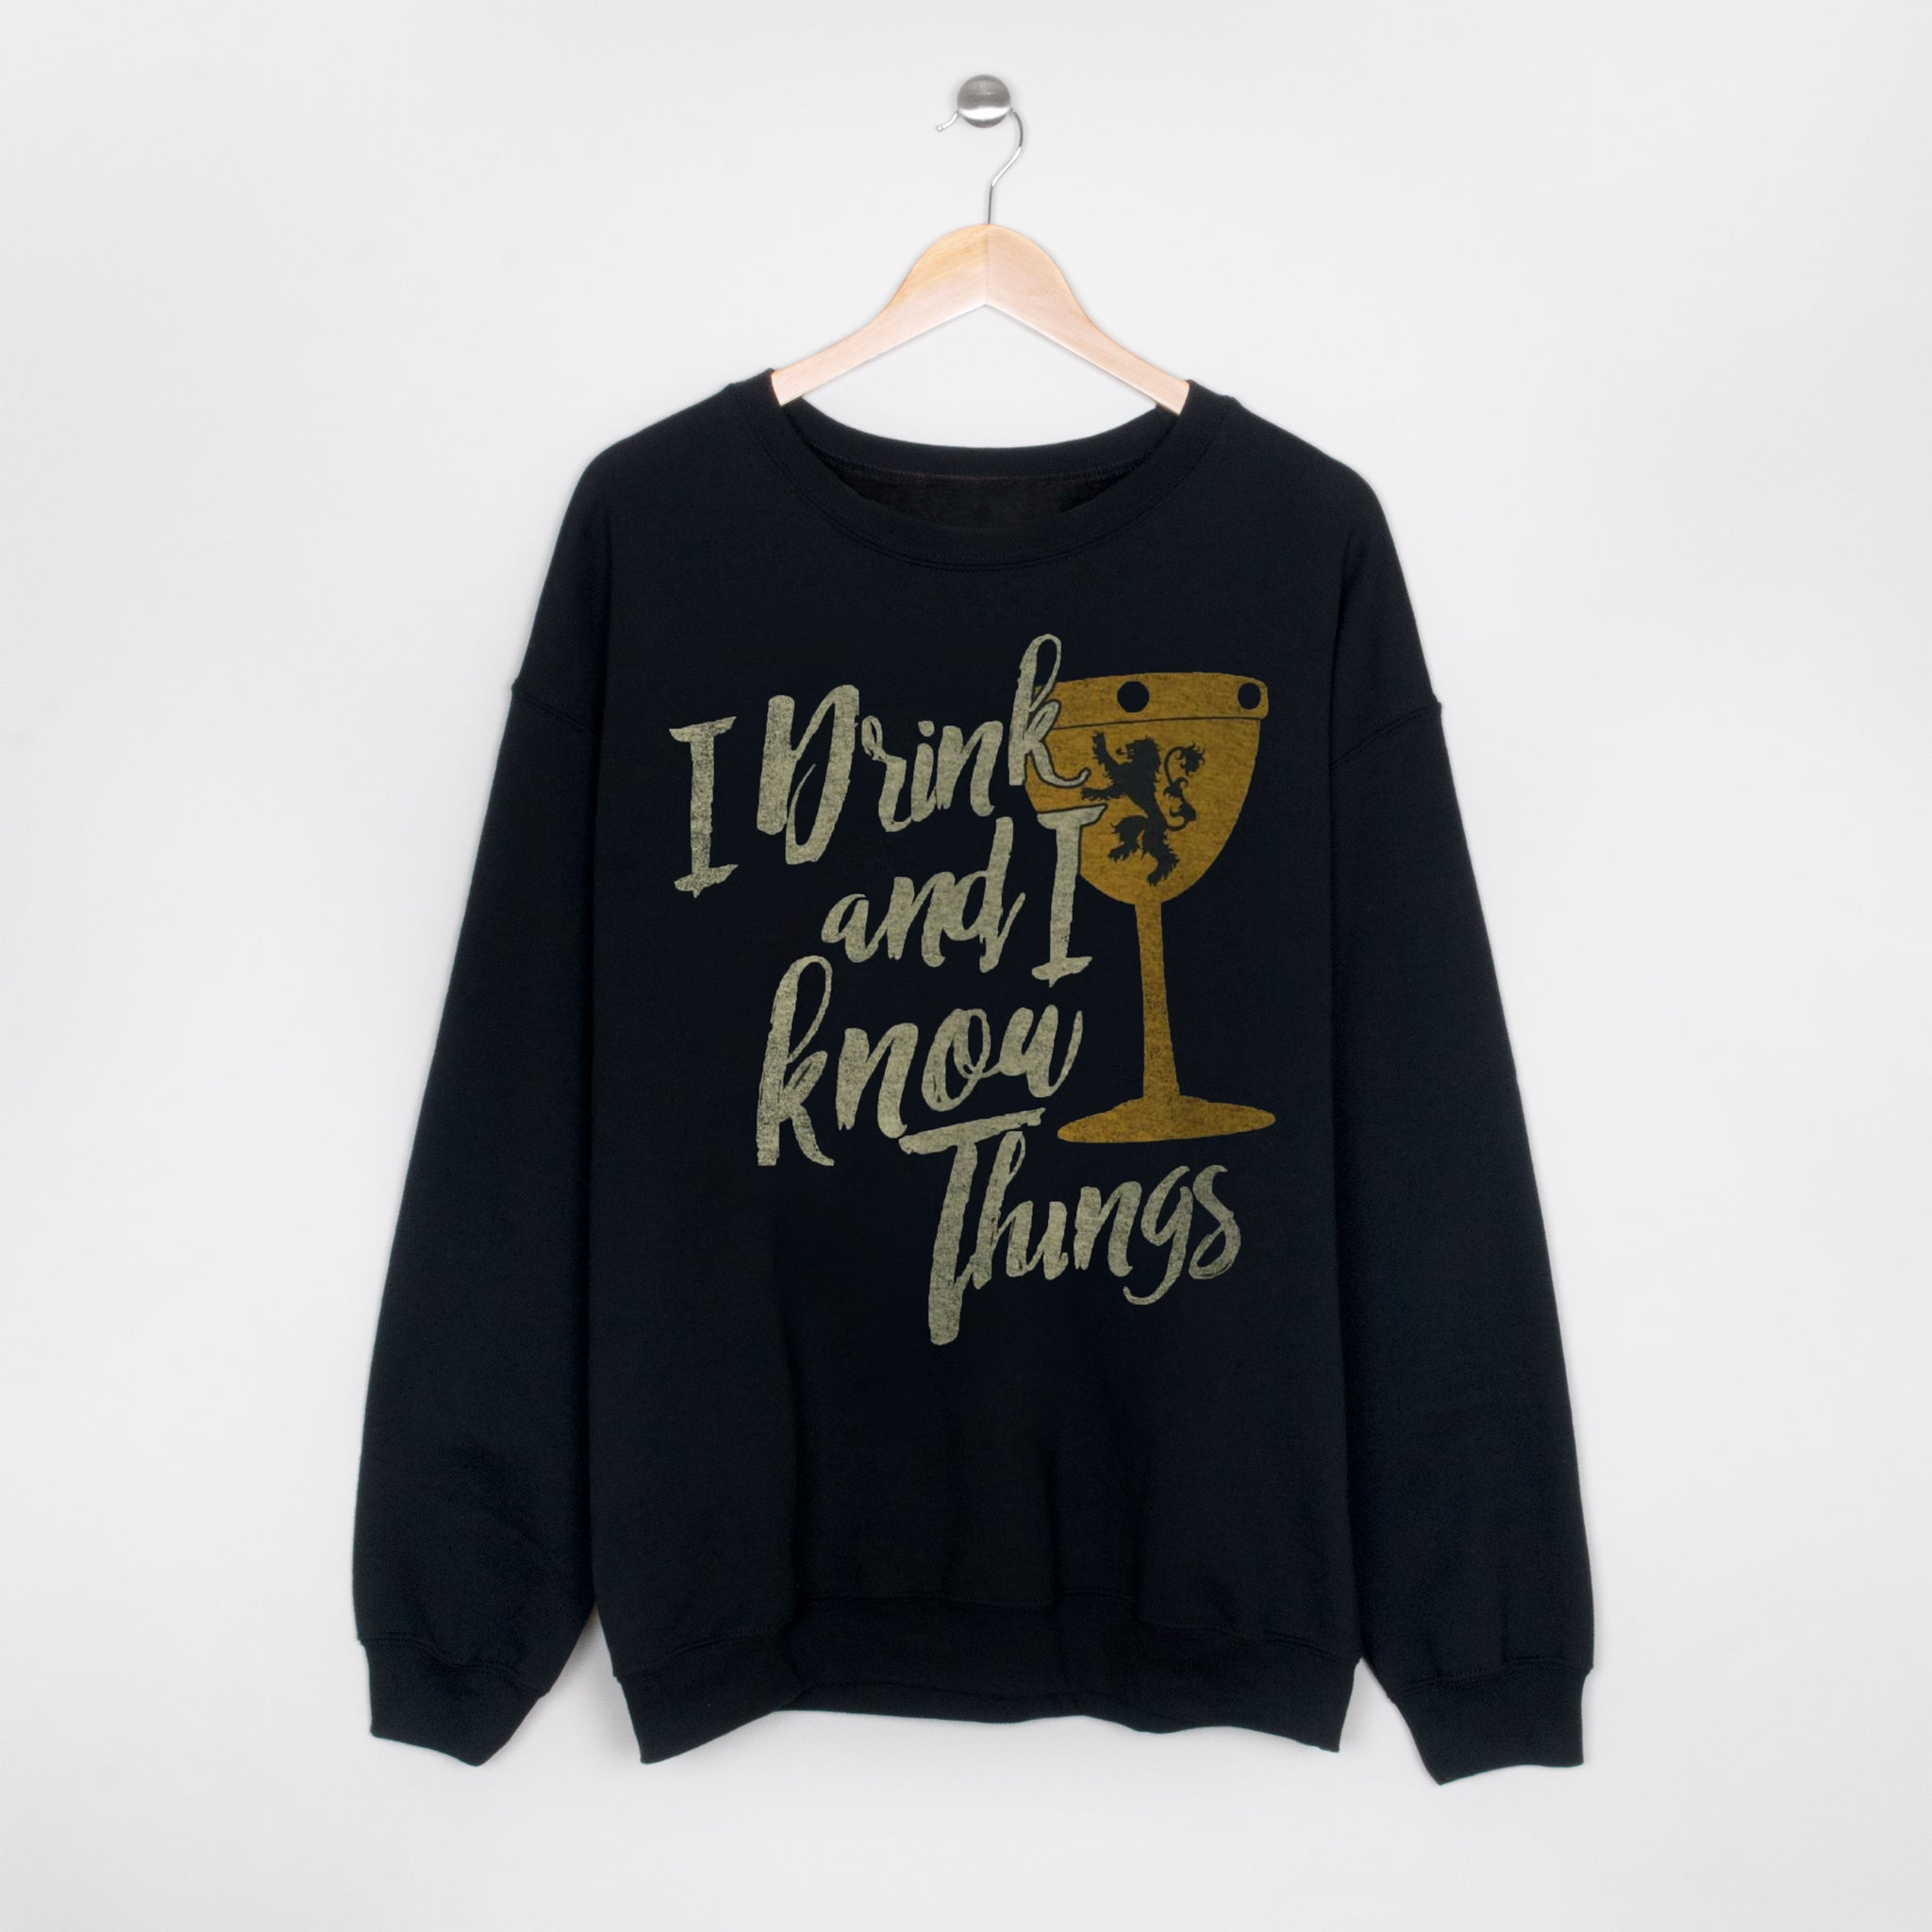 Game of Thrones - Drink and Know Things Sweatshirt